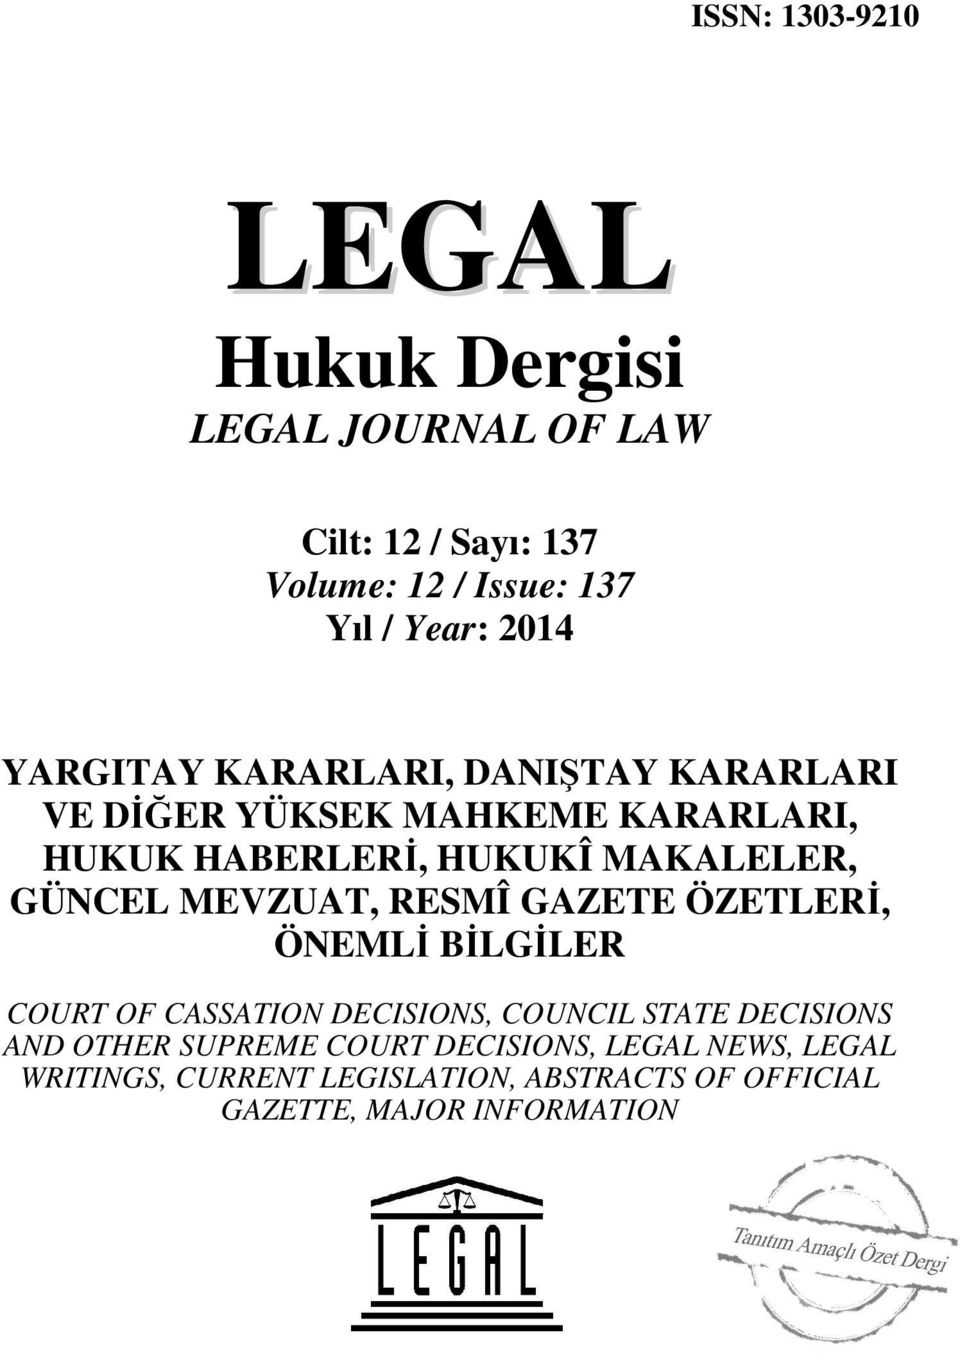 MEVZUAT, RESMÎ GAZETE ÖZETLERİ, ÖNEMLİ BİLGİLER COURT OF CASSATION DECISIONS, COUNCIL STATE DECISIONS AND OTHER